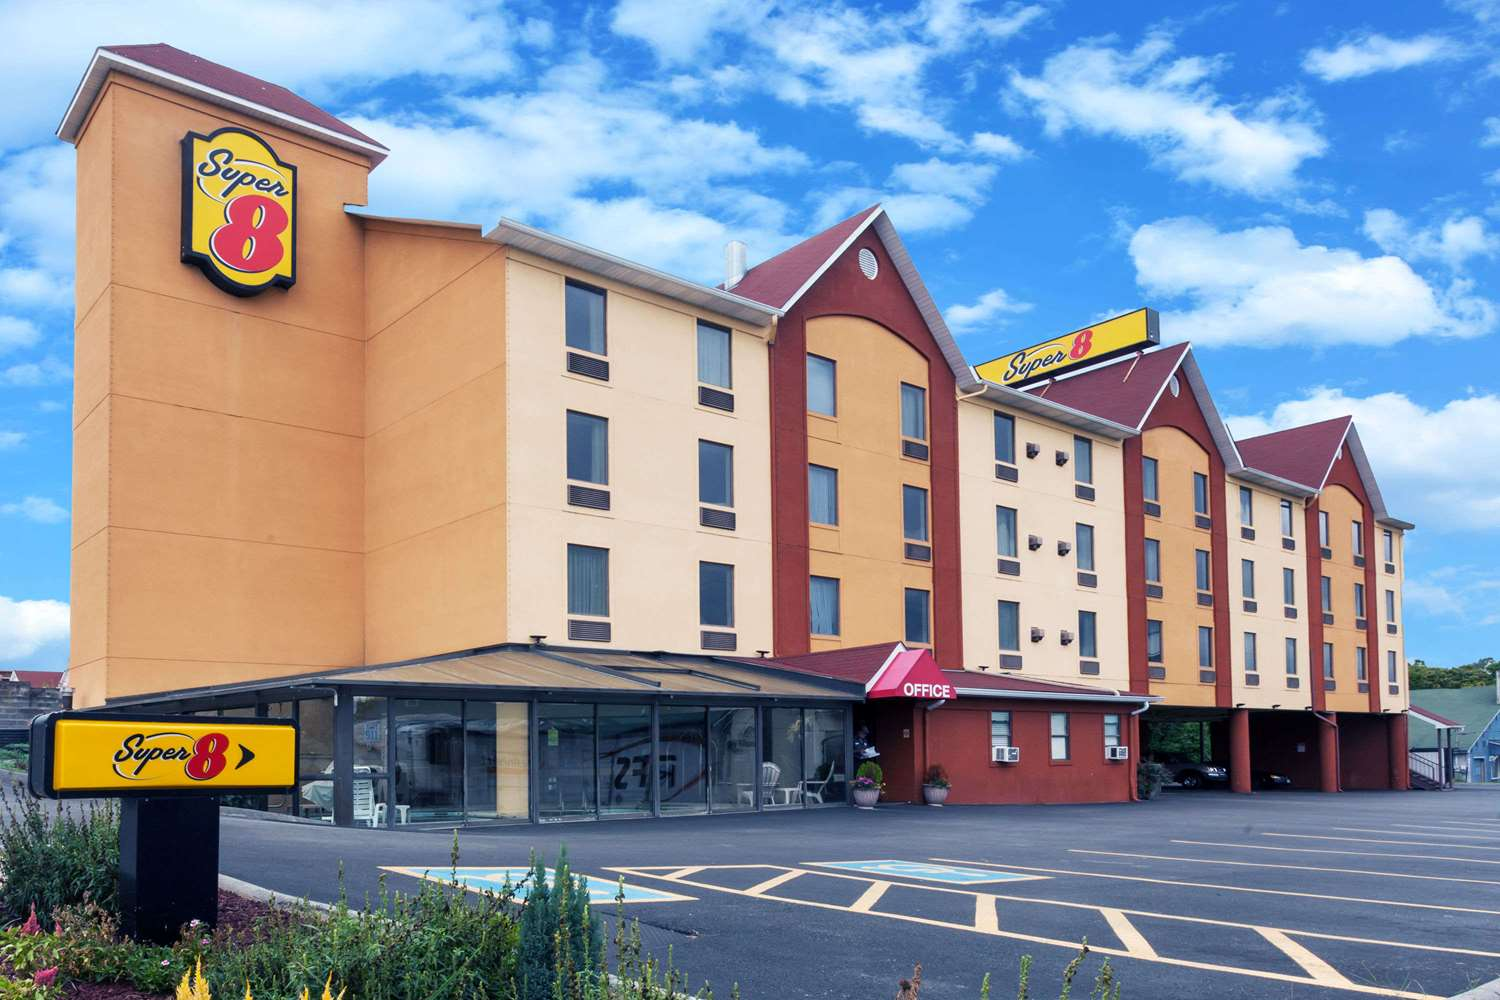 Super 8 Hotel Pigeon Forge, TN - See Discounts